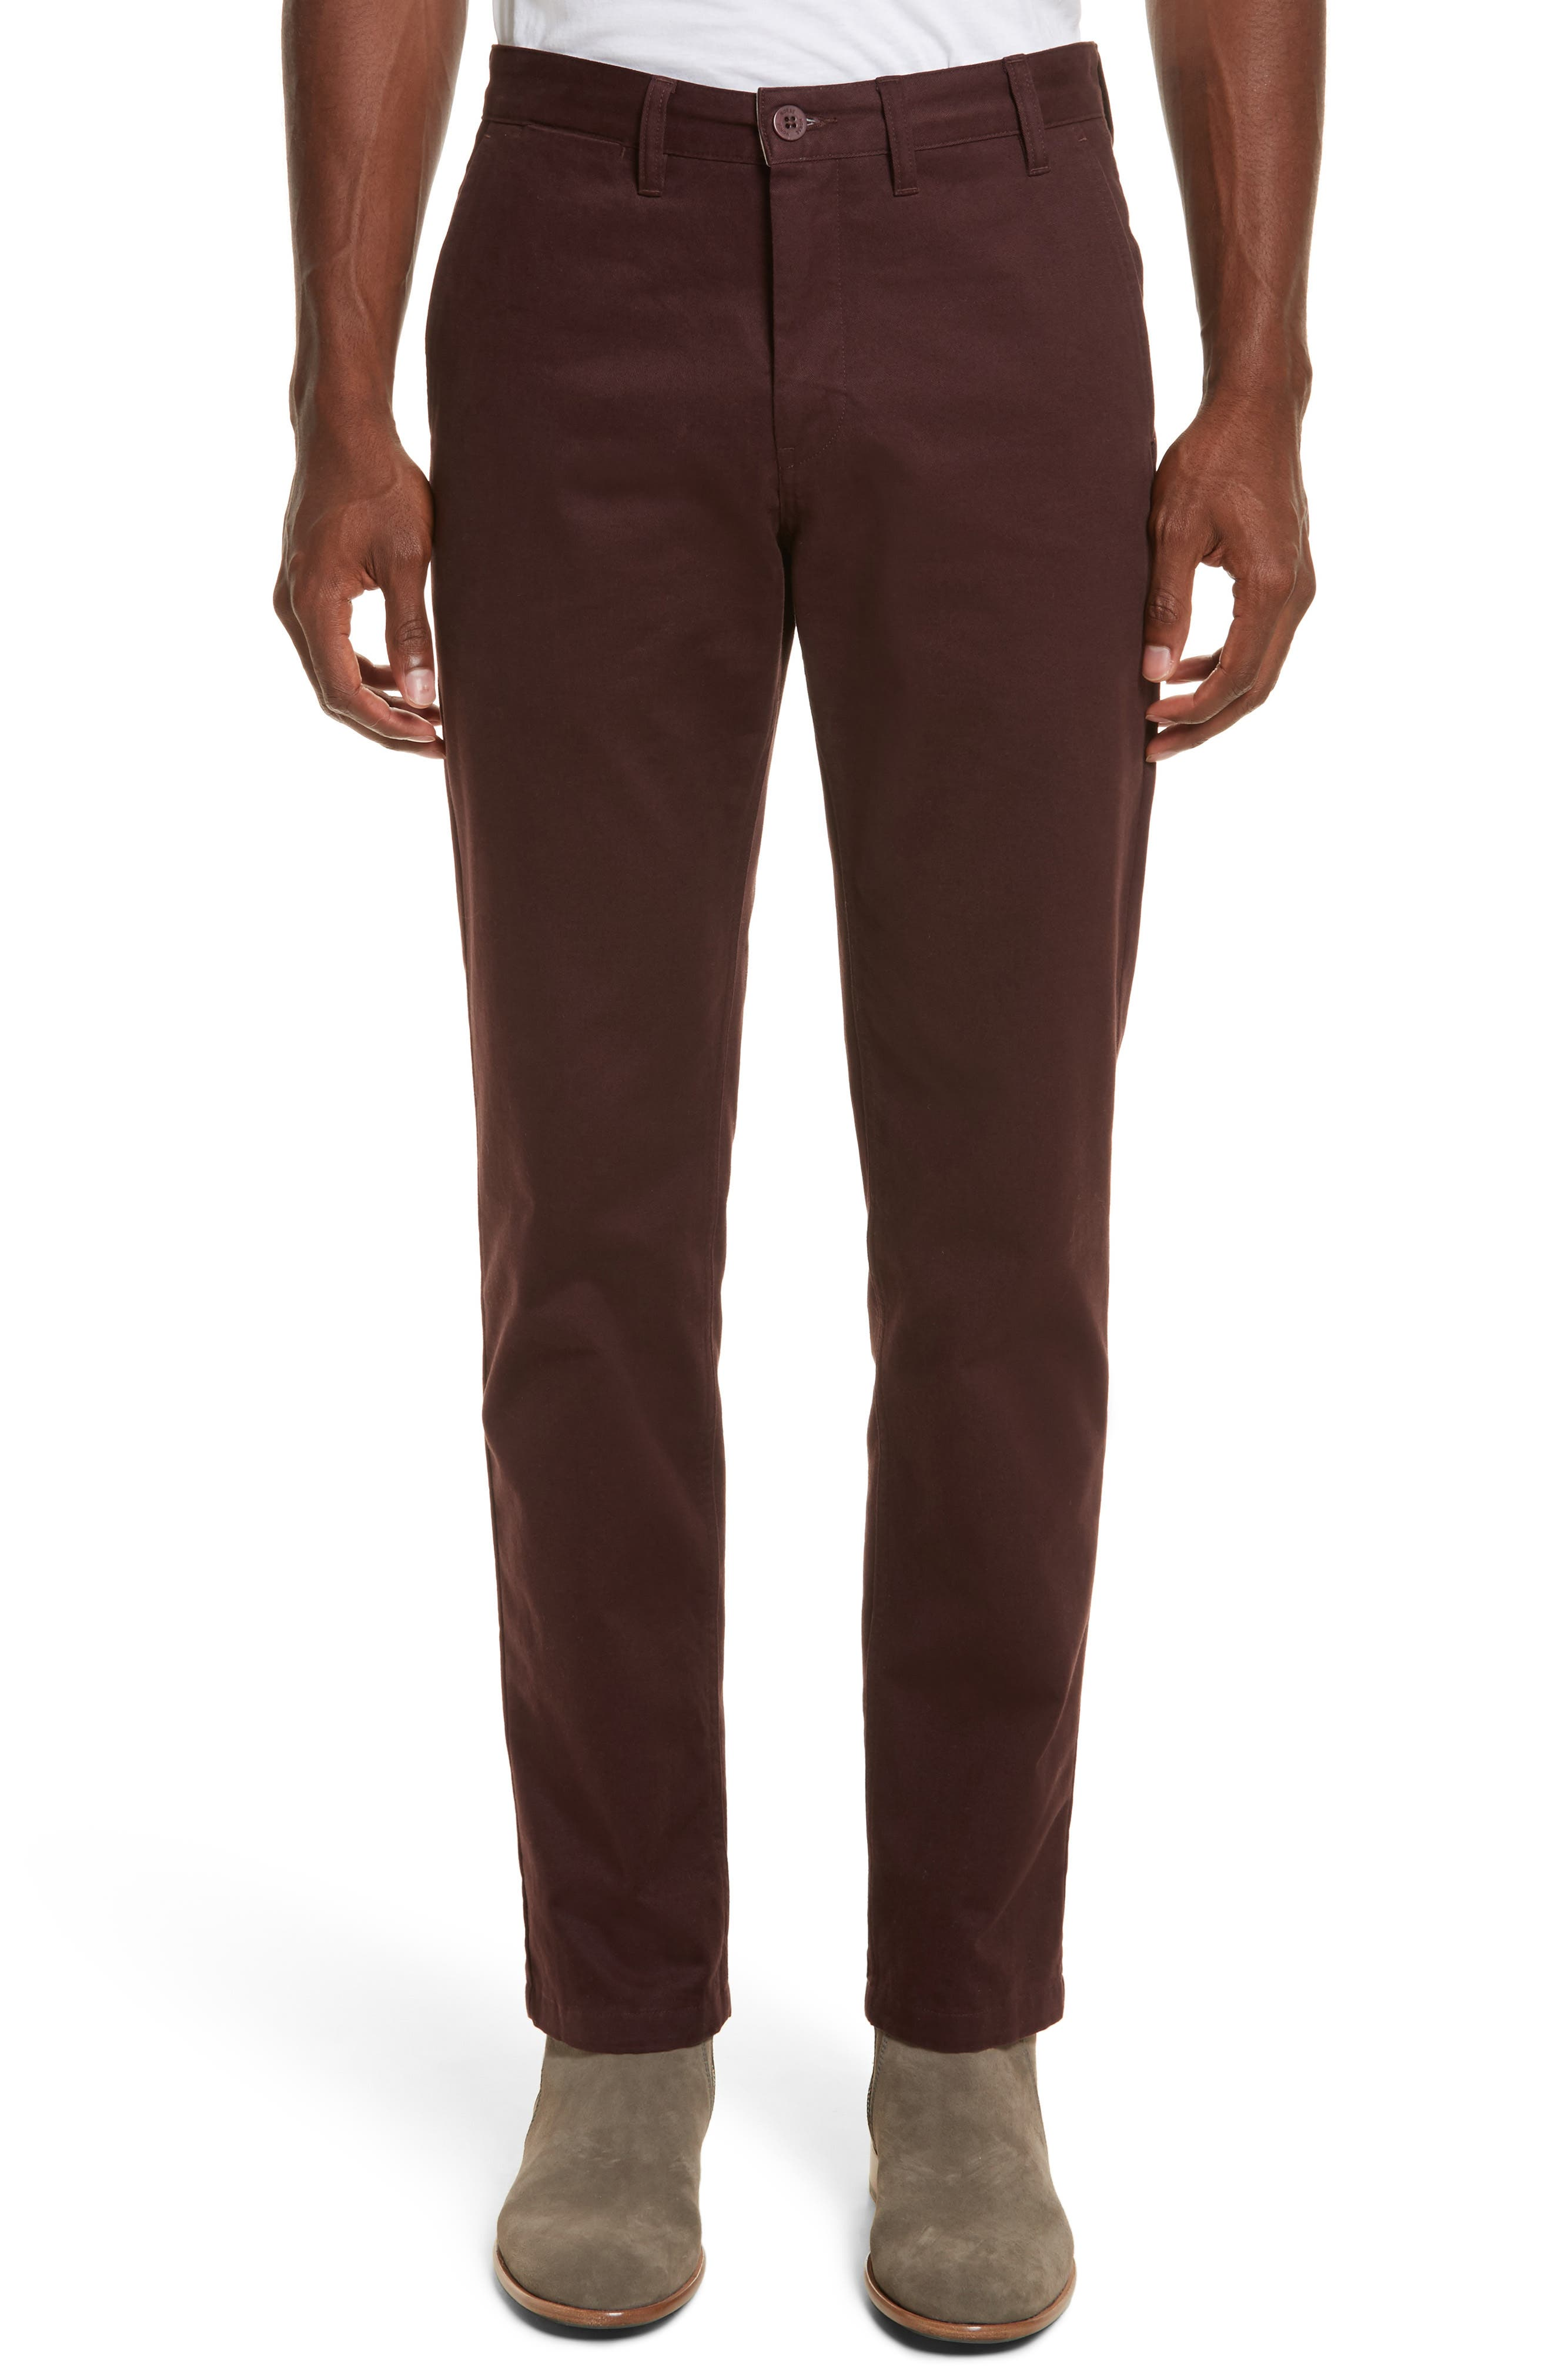 Aros Brushed Twill Chinos,                             Main thumbnail 1, color,                             Hematite Red